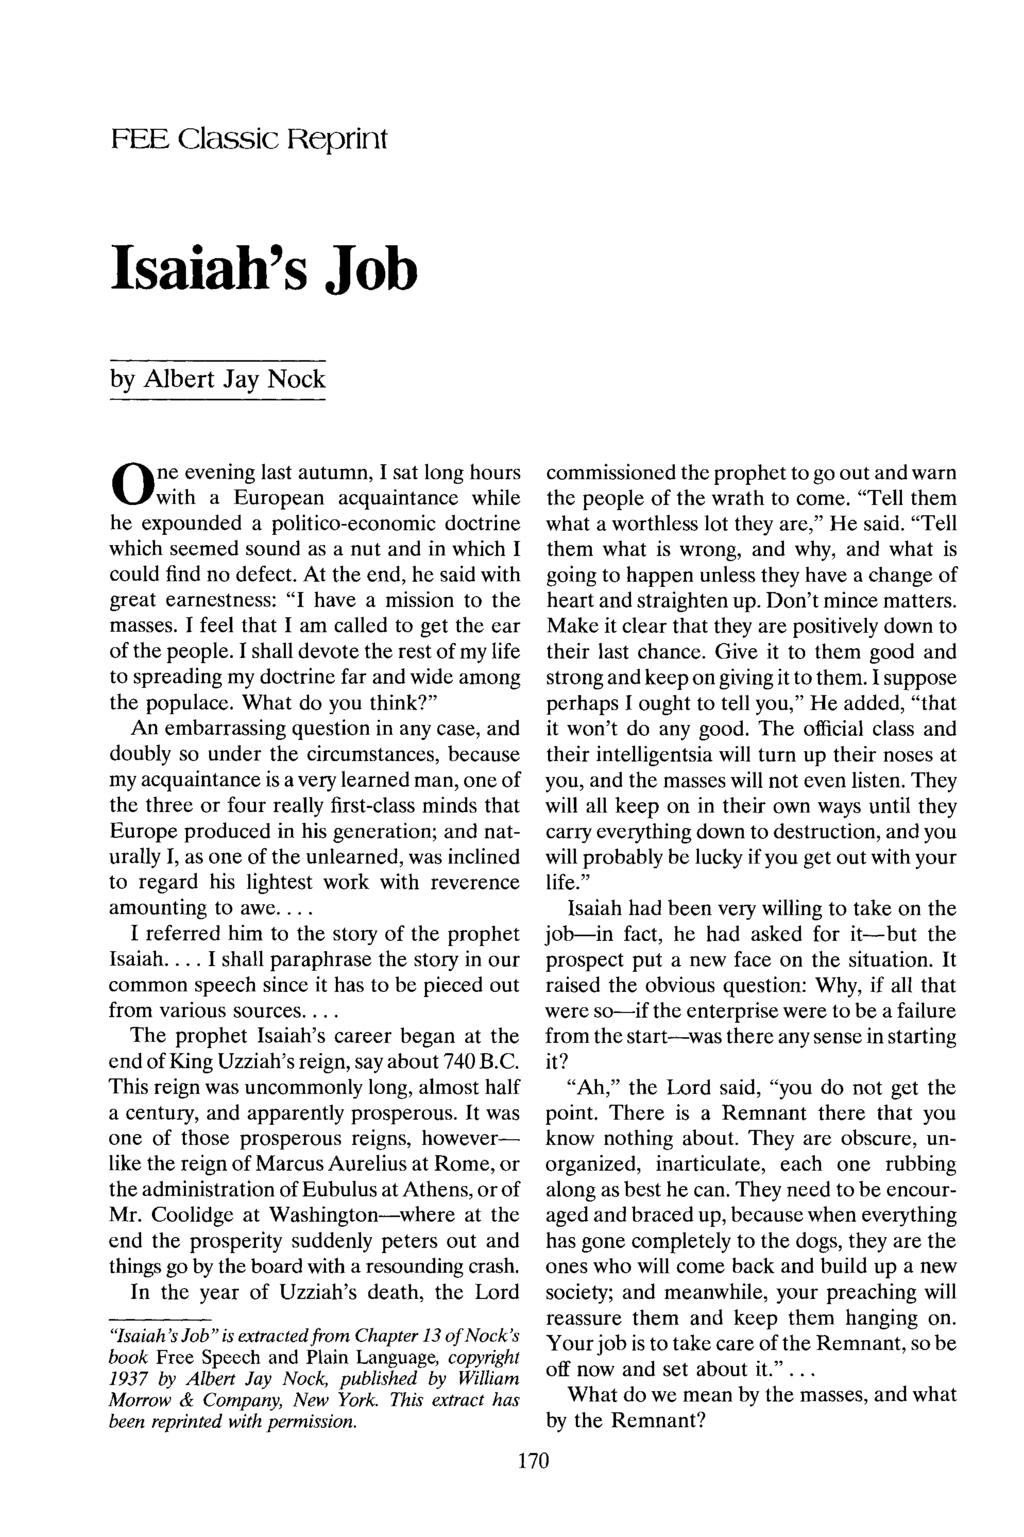 FEE Classic Reprint Isaiah's Job by Albert Jay Nock One evening last autumn, I sat long hours with a European acquaintance while he expounded a politico-economic doctrine which seemed sound as a nut